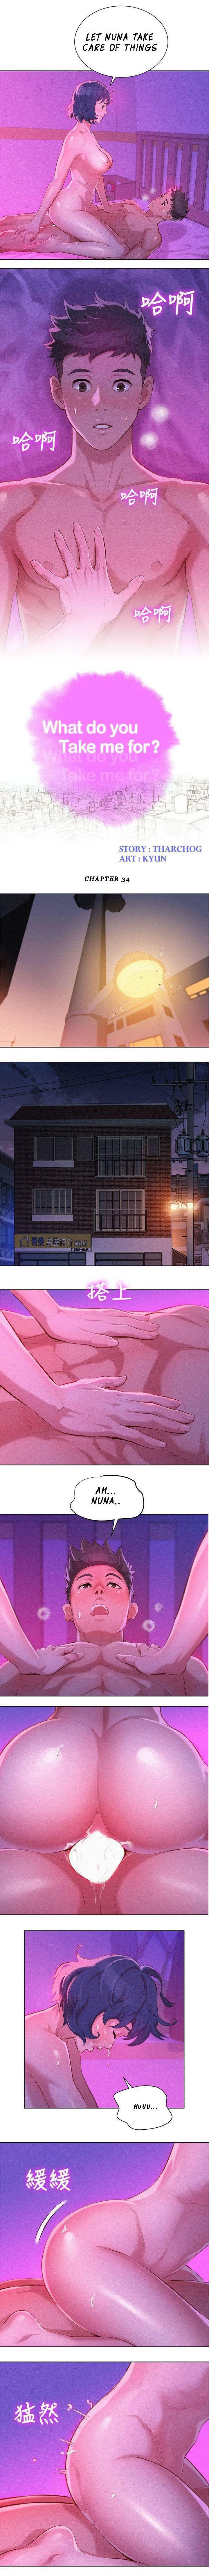 What do you Take me For? Ch.40/? 343